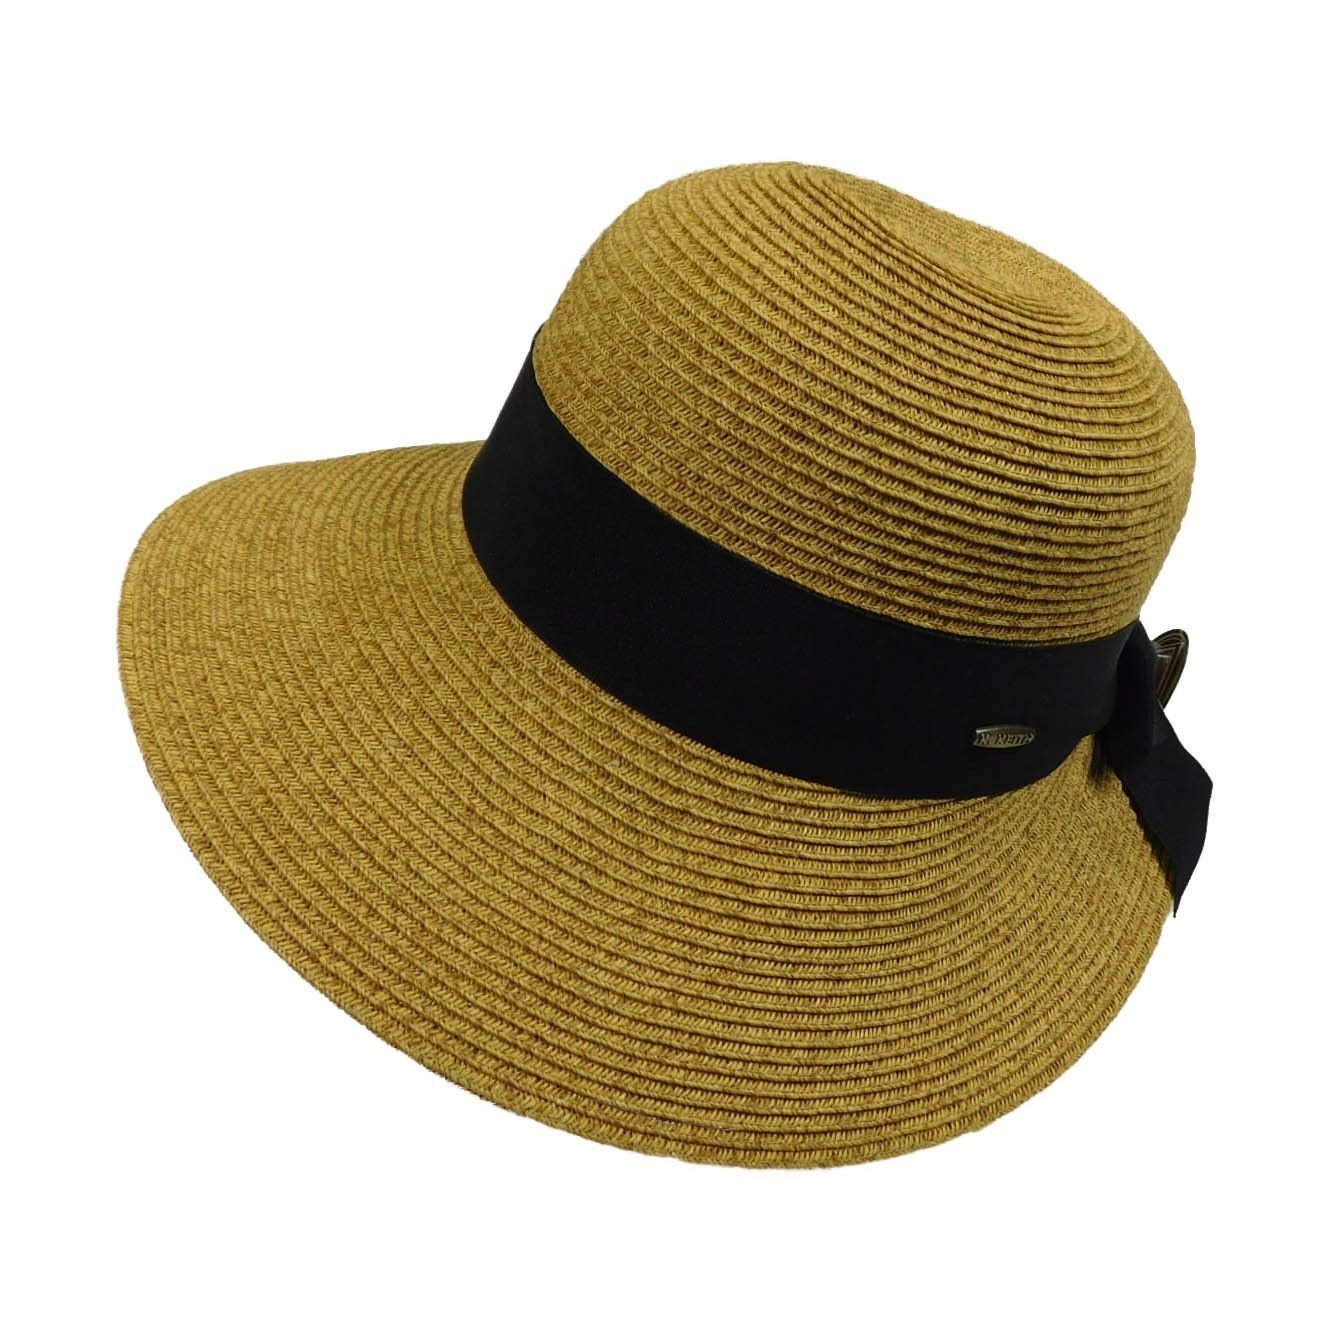 10baf9f3f Sun Hat with Narrowing Brim - Karen Keith in 2019 | Products | Hats ...